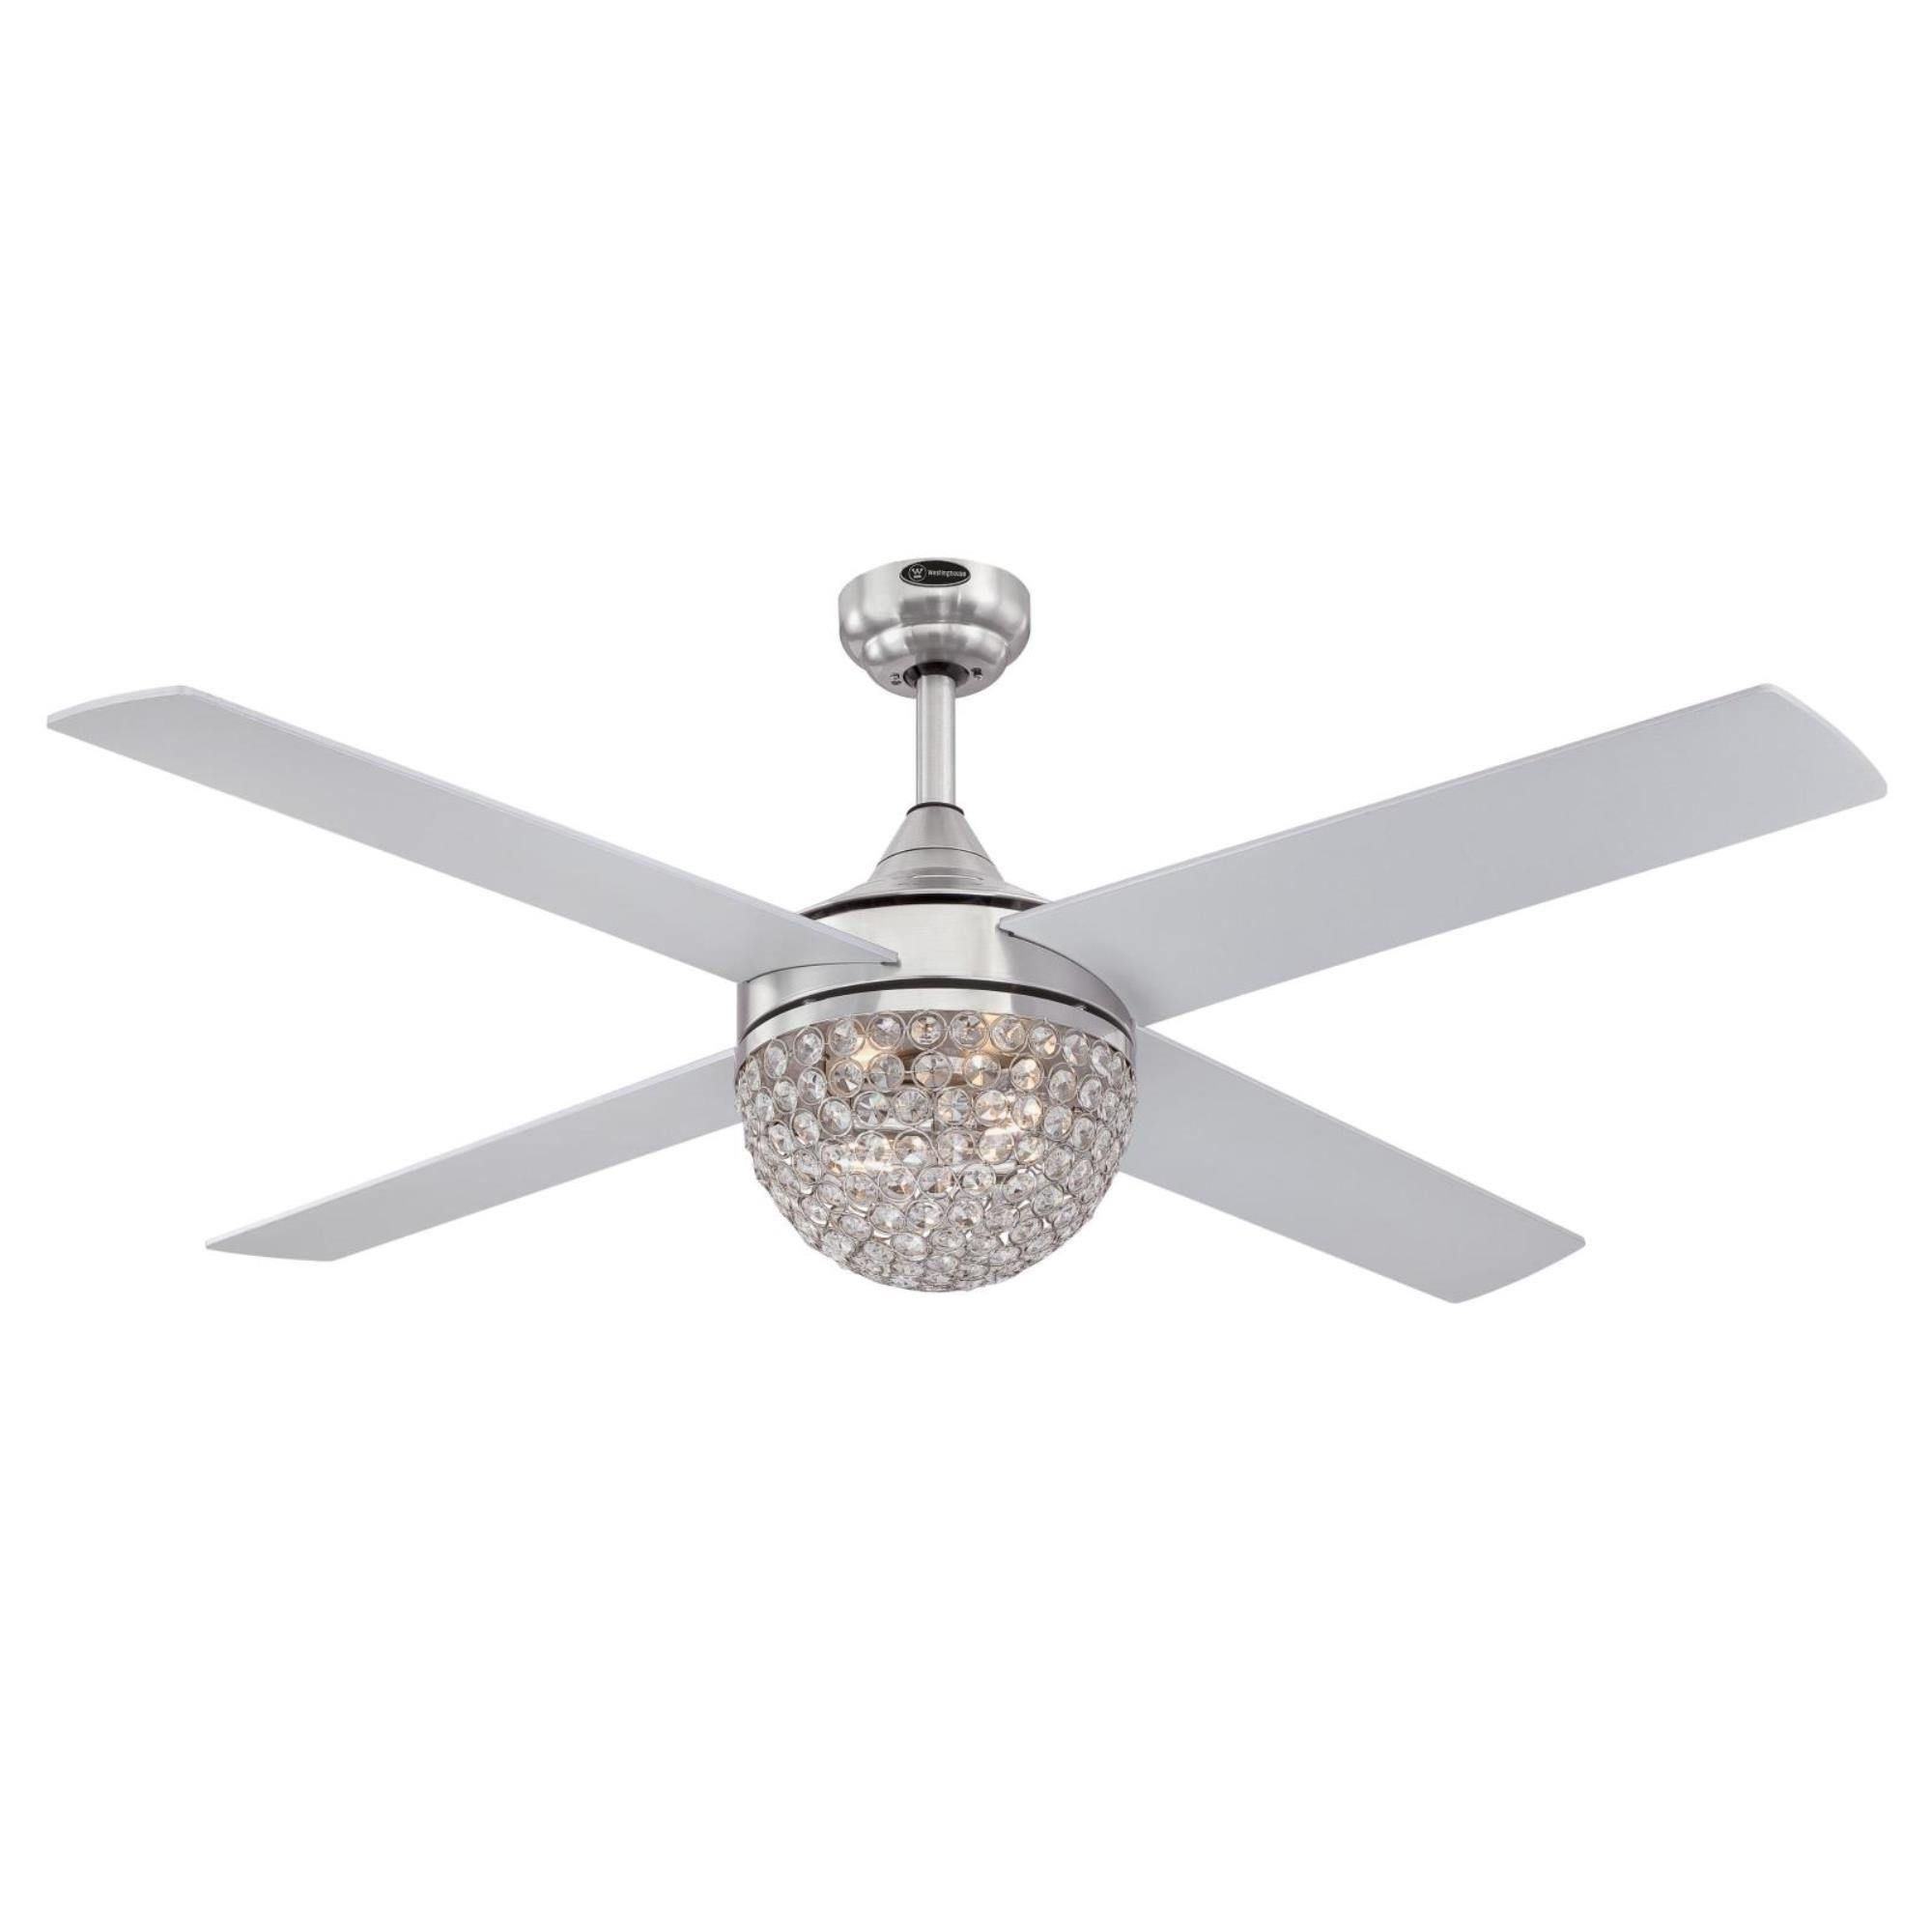 Westinghouse Kelcie 52 Inch Indoor Brushed Nickel Ceiling Fan Dimmable Led Light Kit With Crystal Jewel Shade Remote Control Included In 2021 Ceiling Fan With Remote Ceiling Fan Ceiling Fan Light Kit